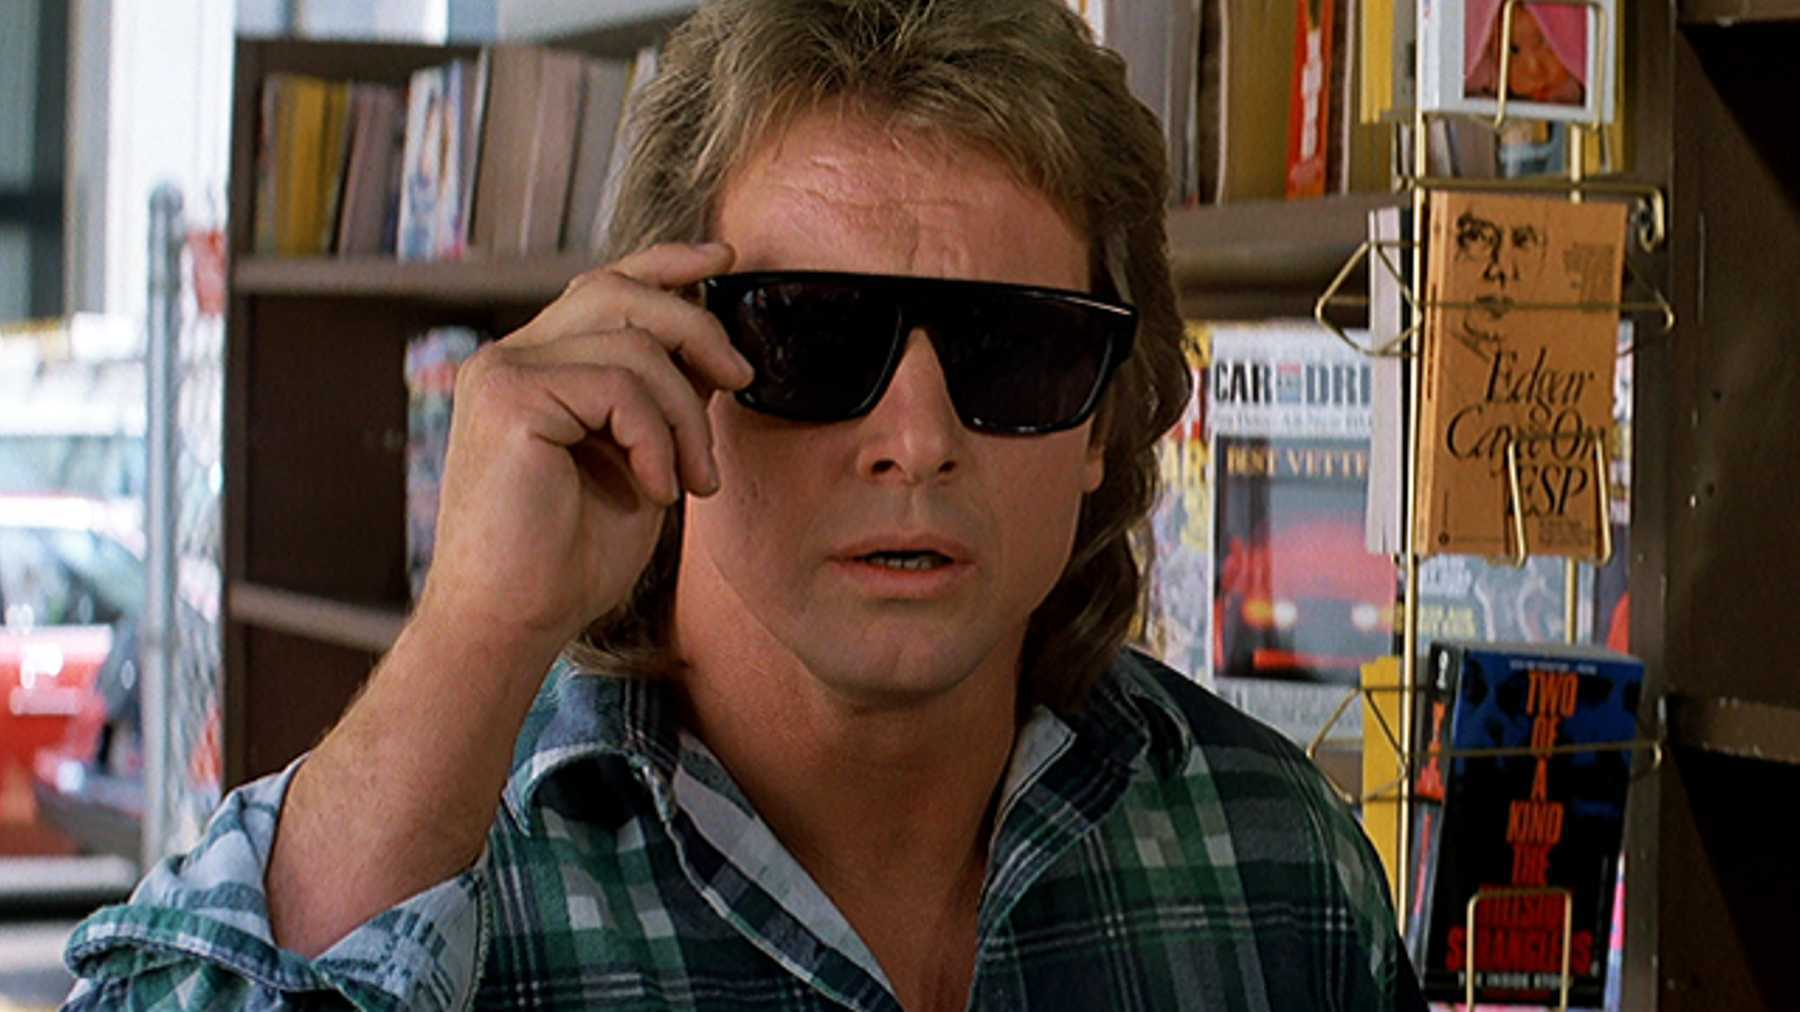 A meme of Rowdy Roddy Piper, wearing sunglasses in the movie They Live.